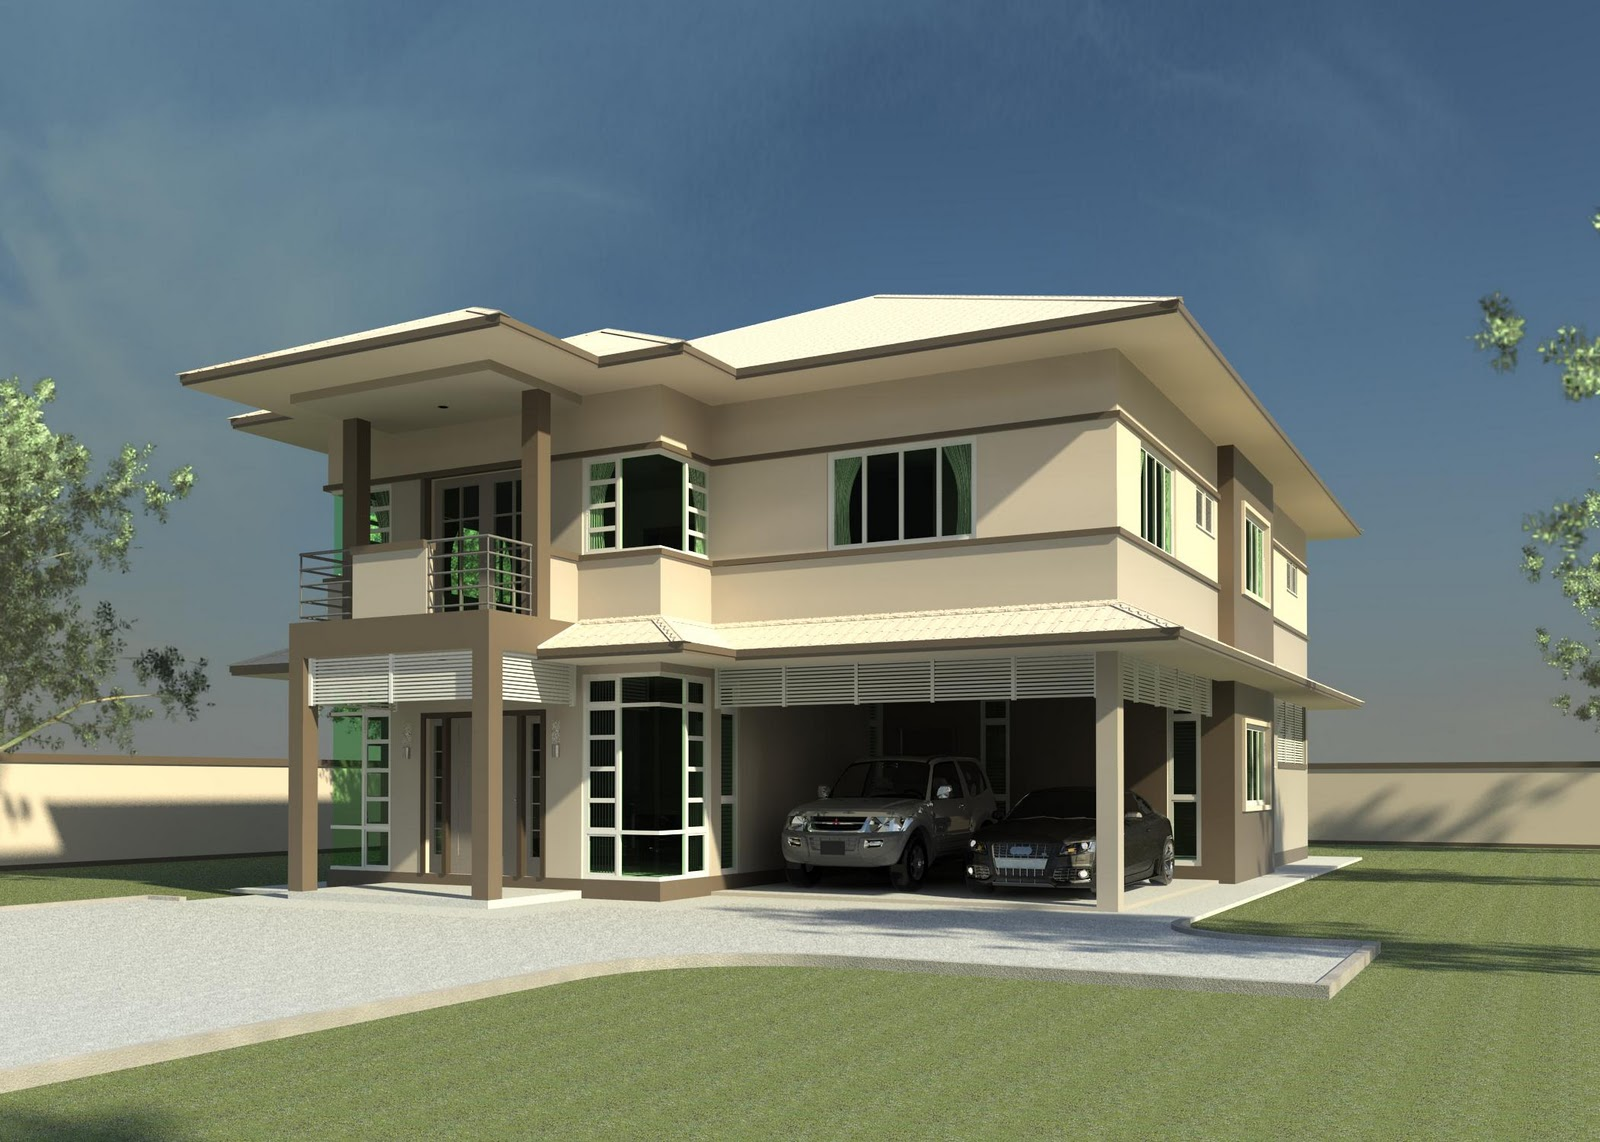 Khalid rahman design 5 bedrooms 6 bathrooms double for 6 bedroom double storey house plans